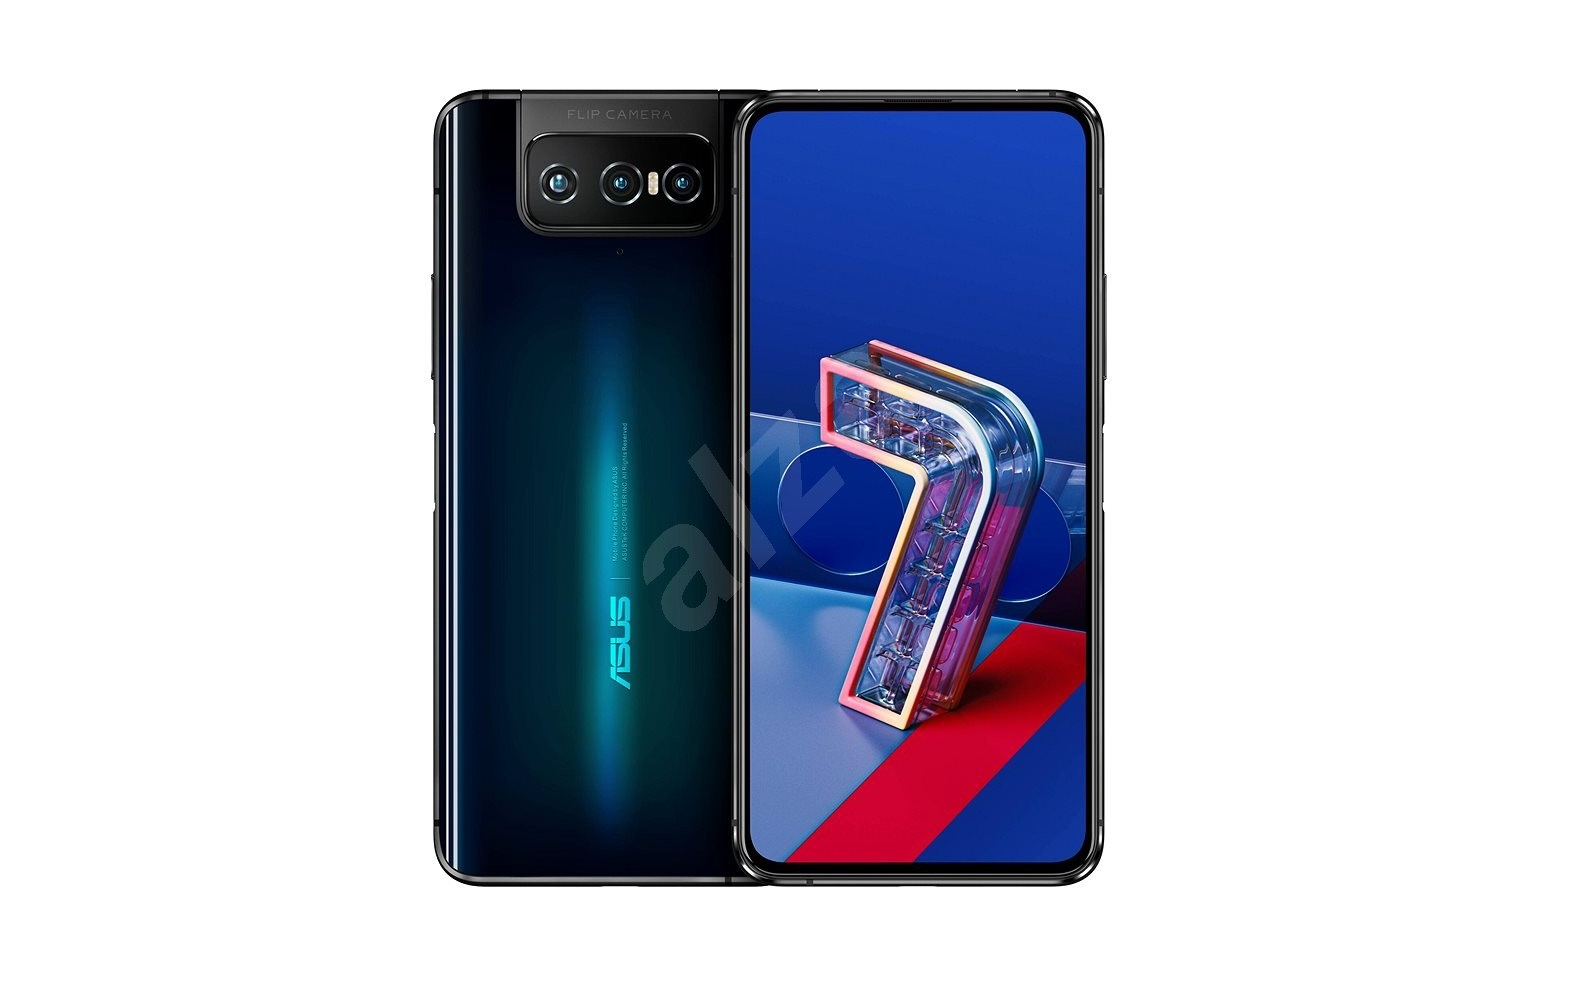 How to Root Asus Zenfone 7 Pro with Magisk without TWRP